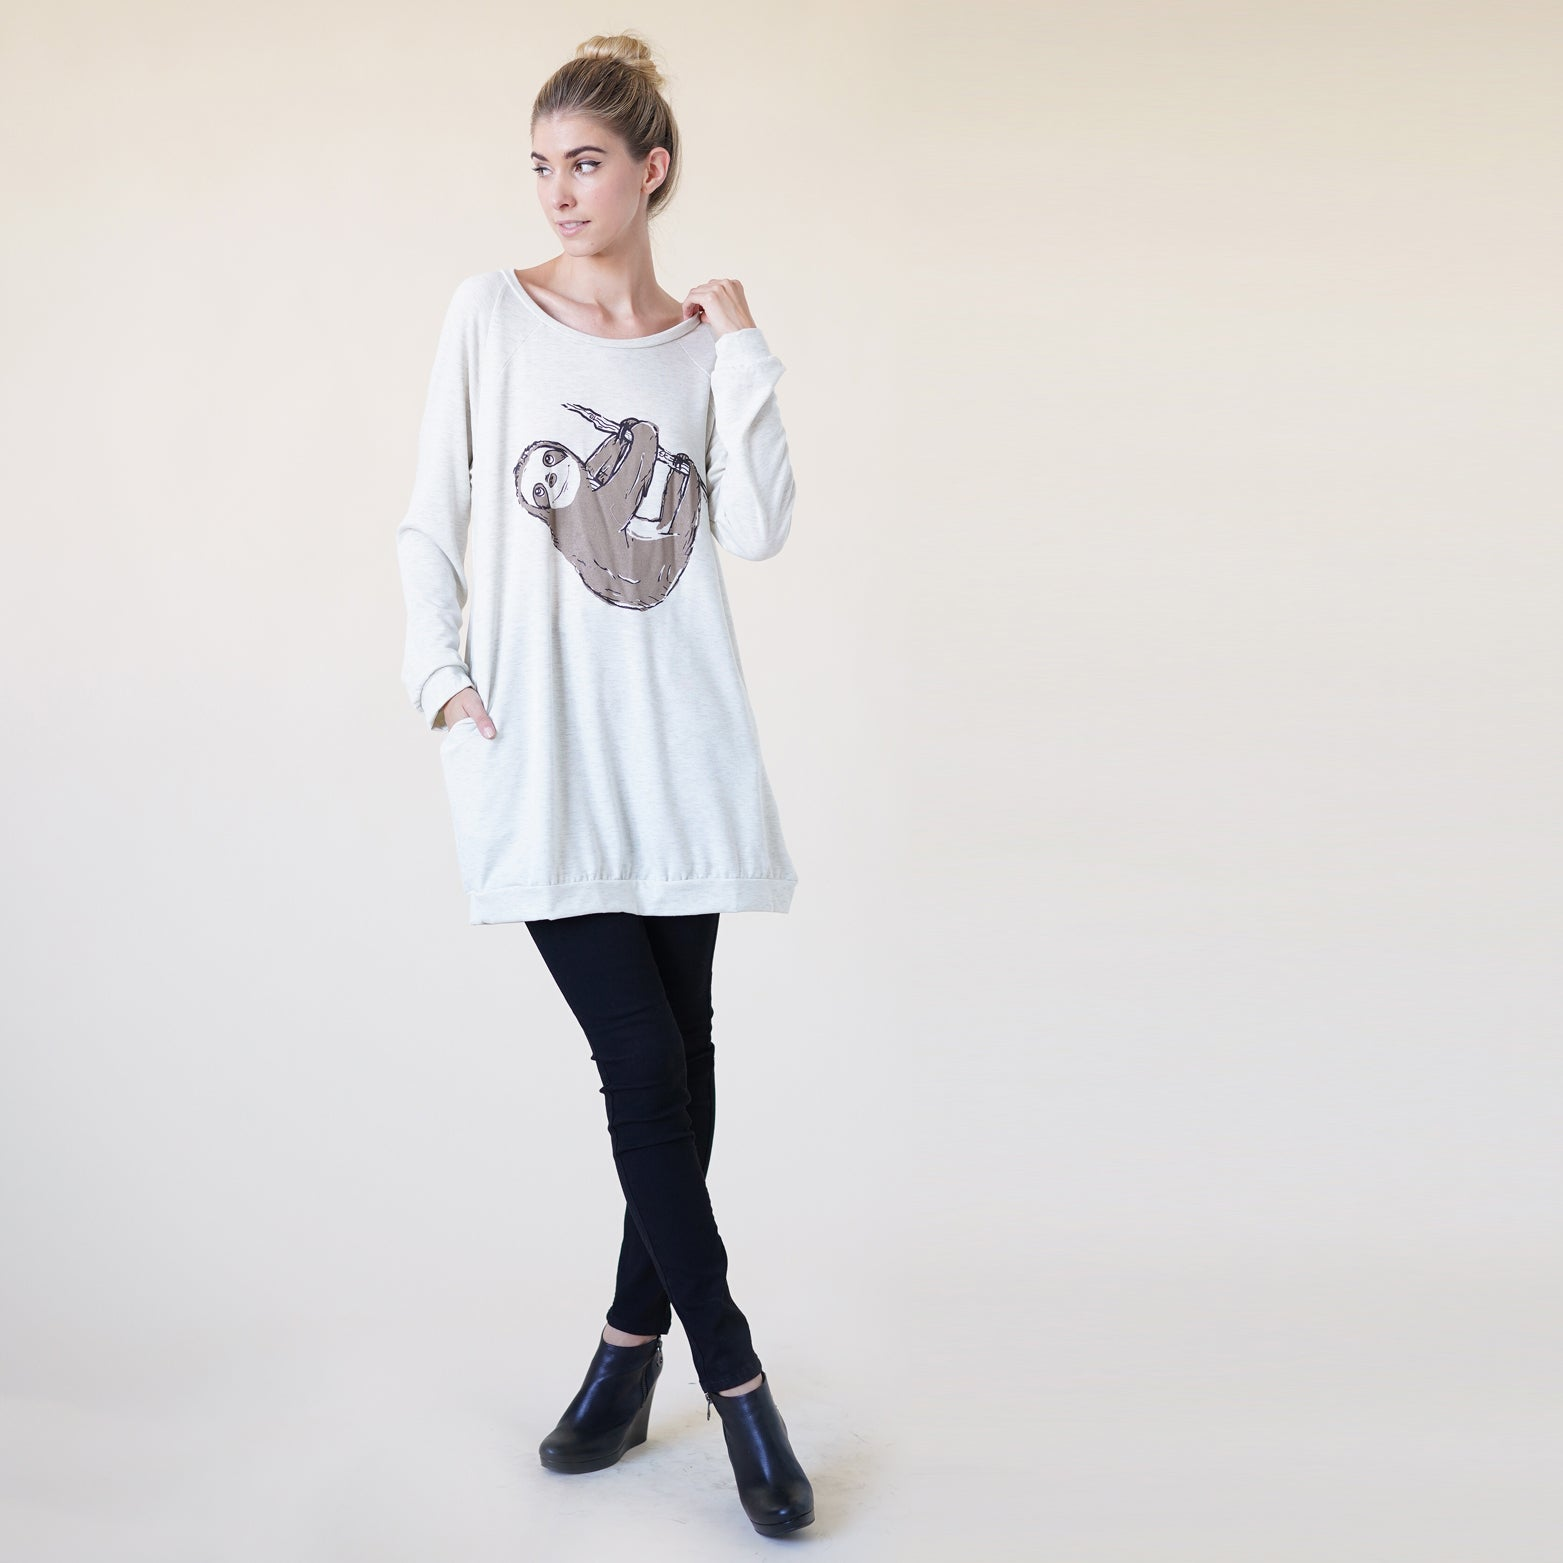 Sloth Print Long Sweatshirt